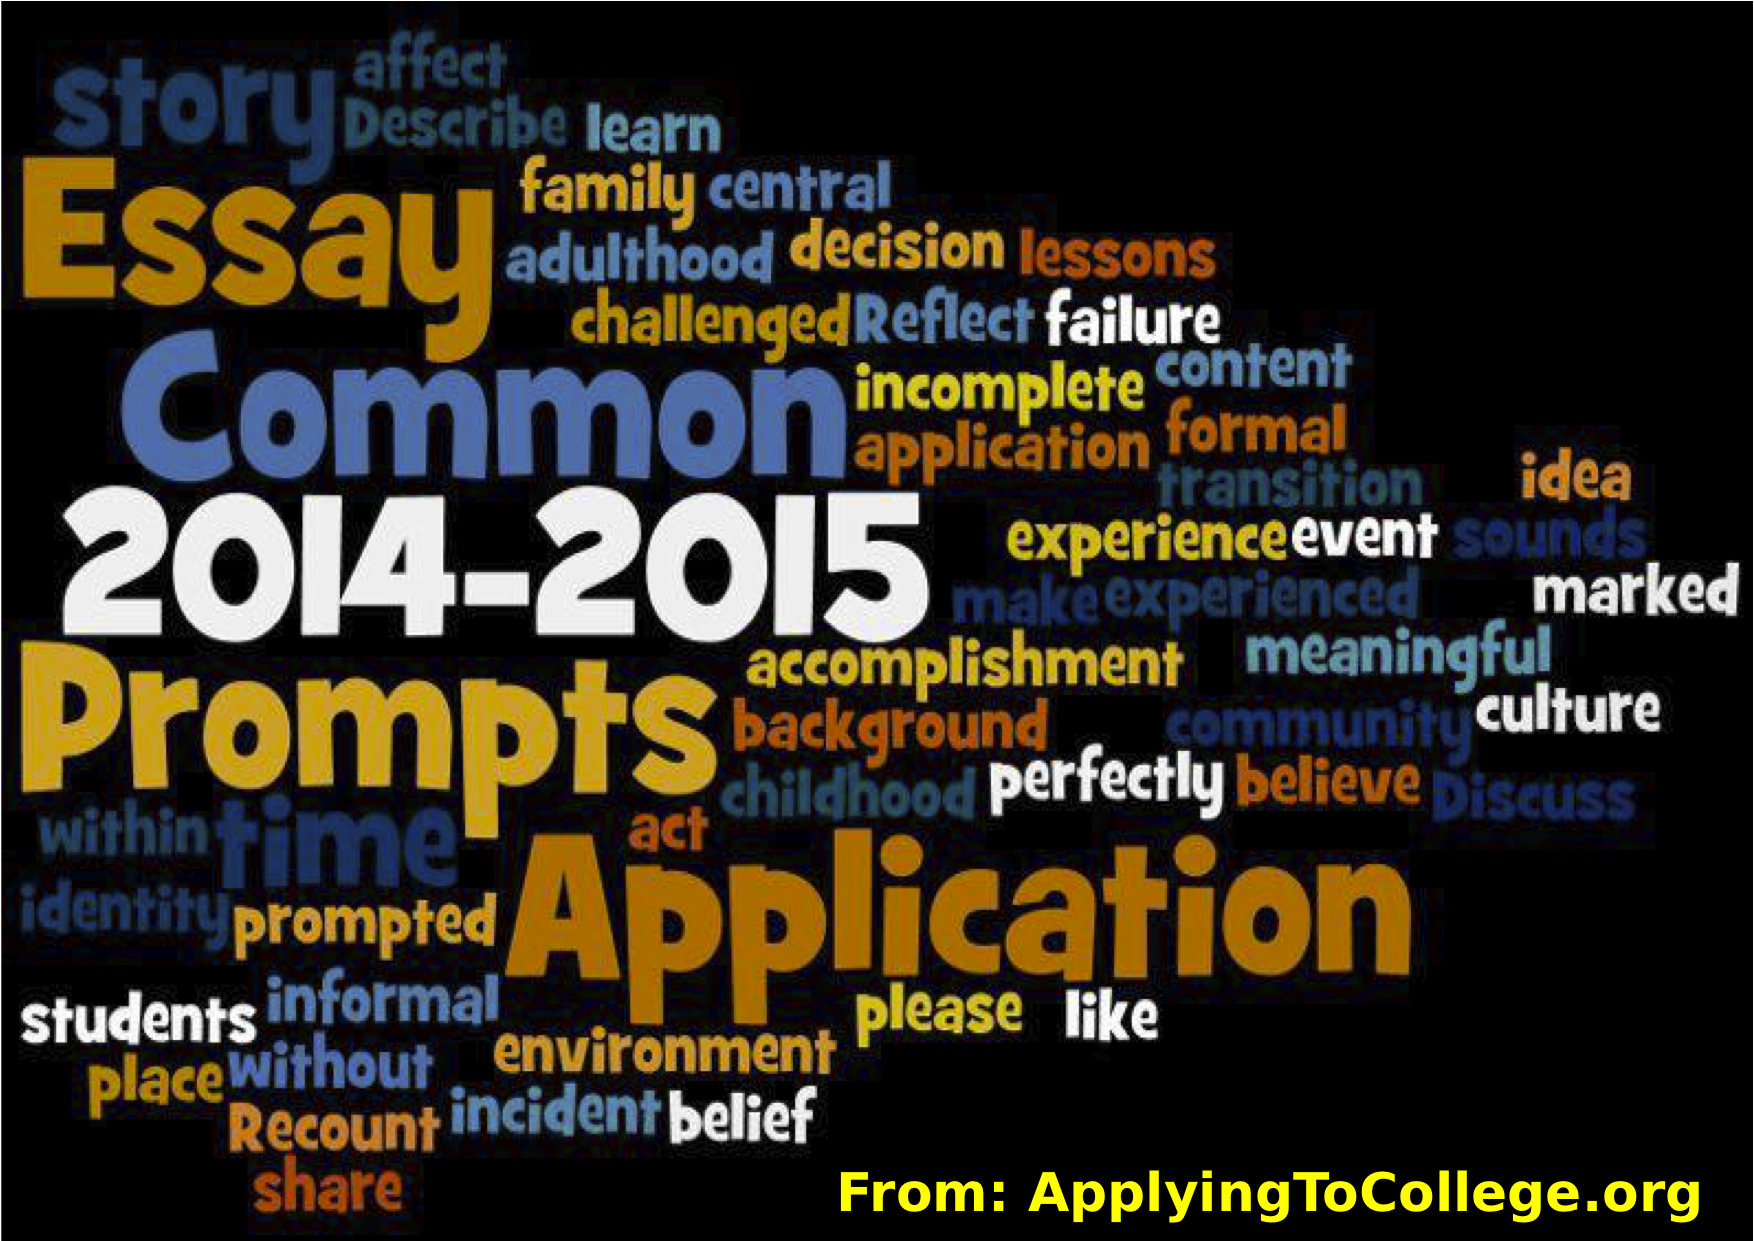 first impressions college consulting applying to college 2014 2015 common application essay prompts